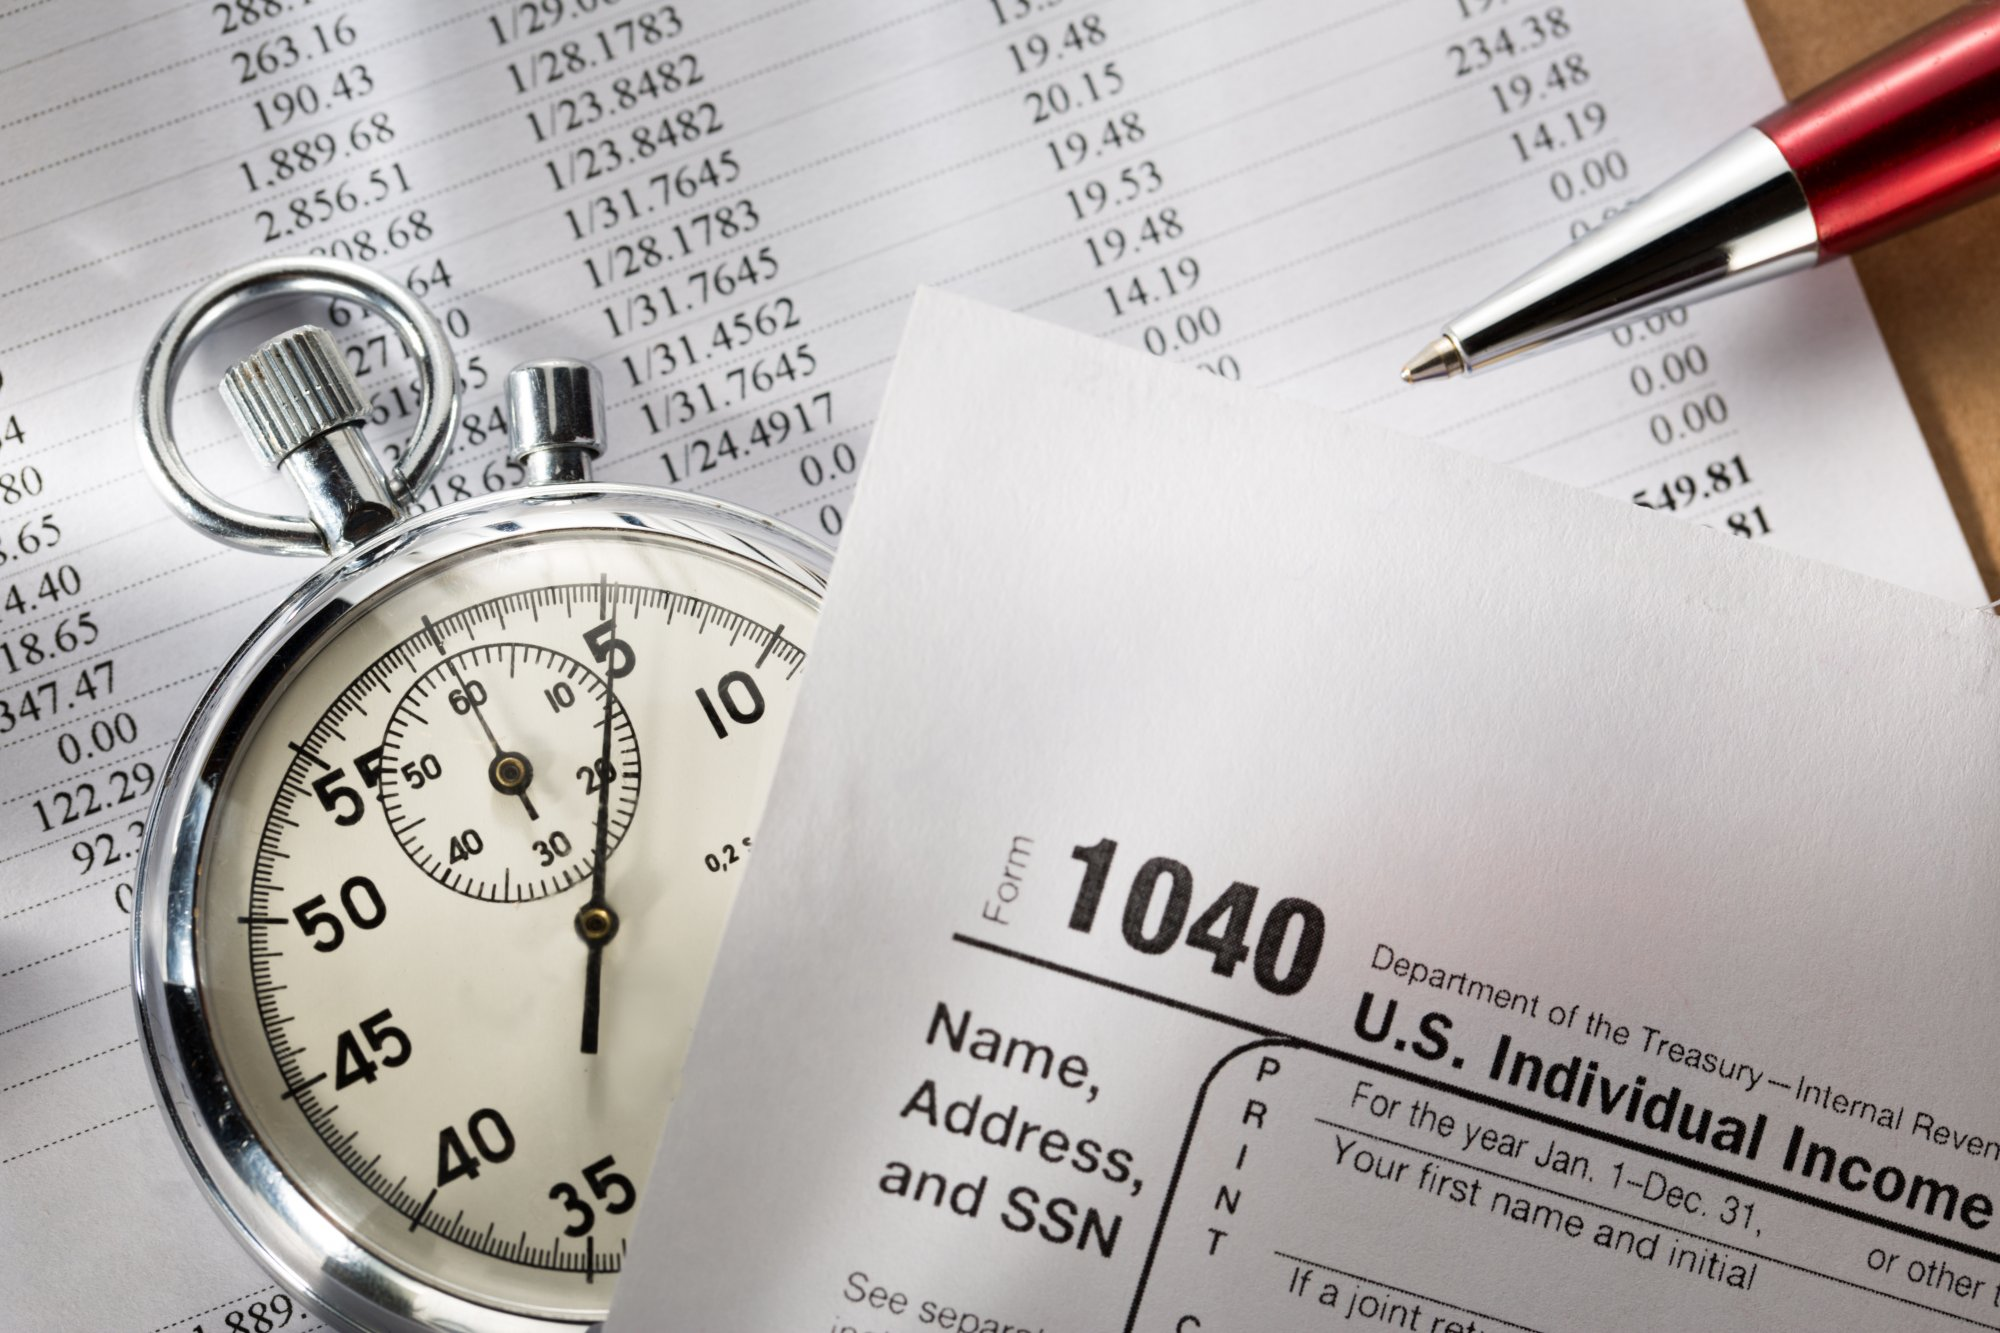 Irs debunks myths surrounding tax refunds falaconquin